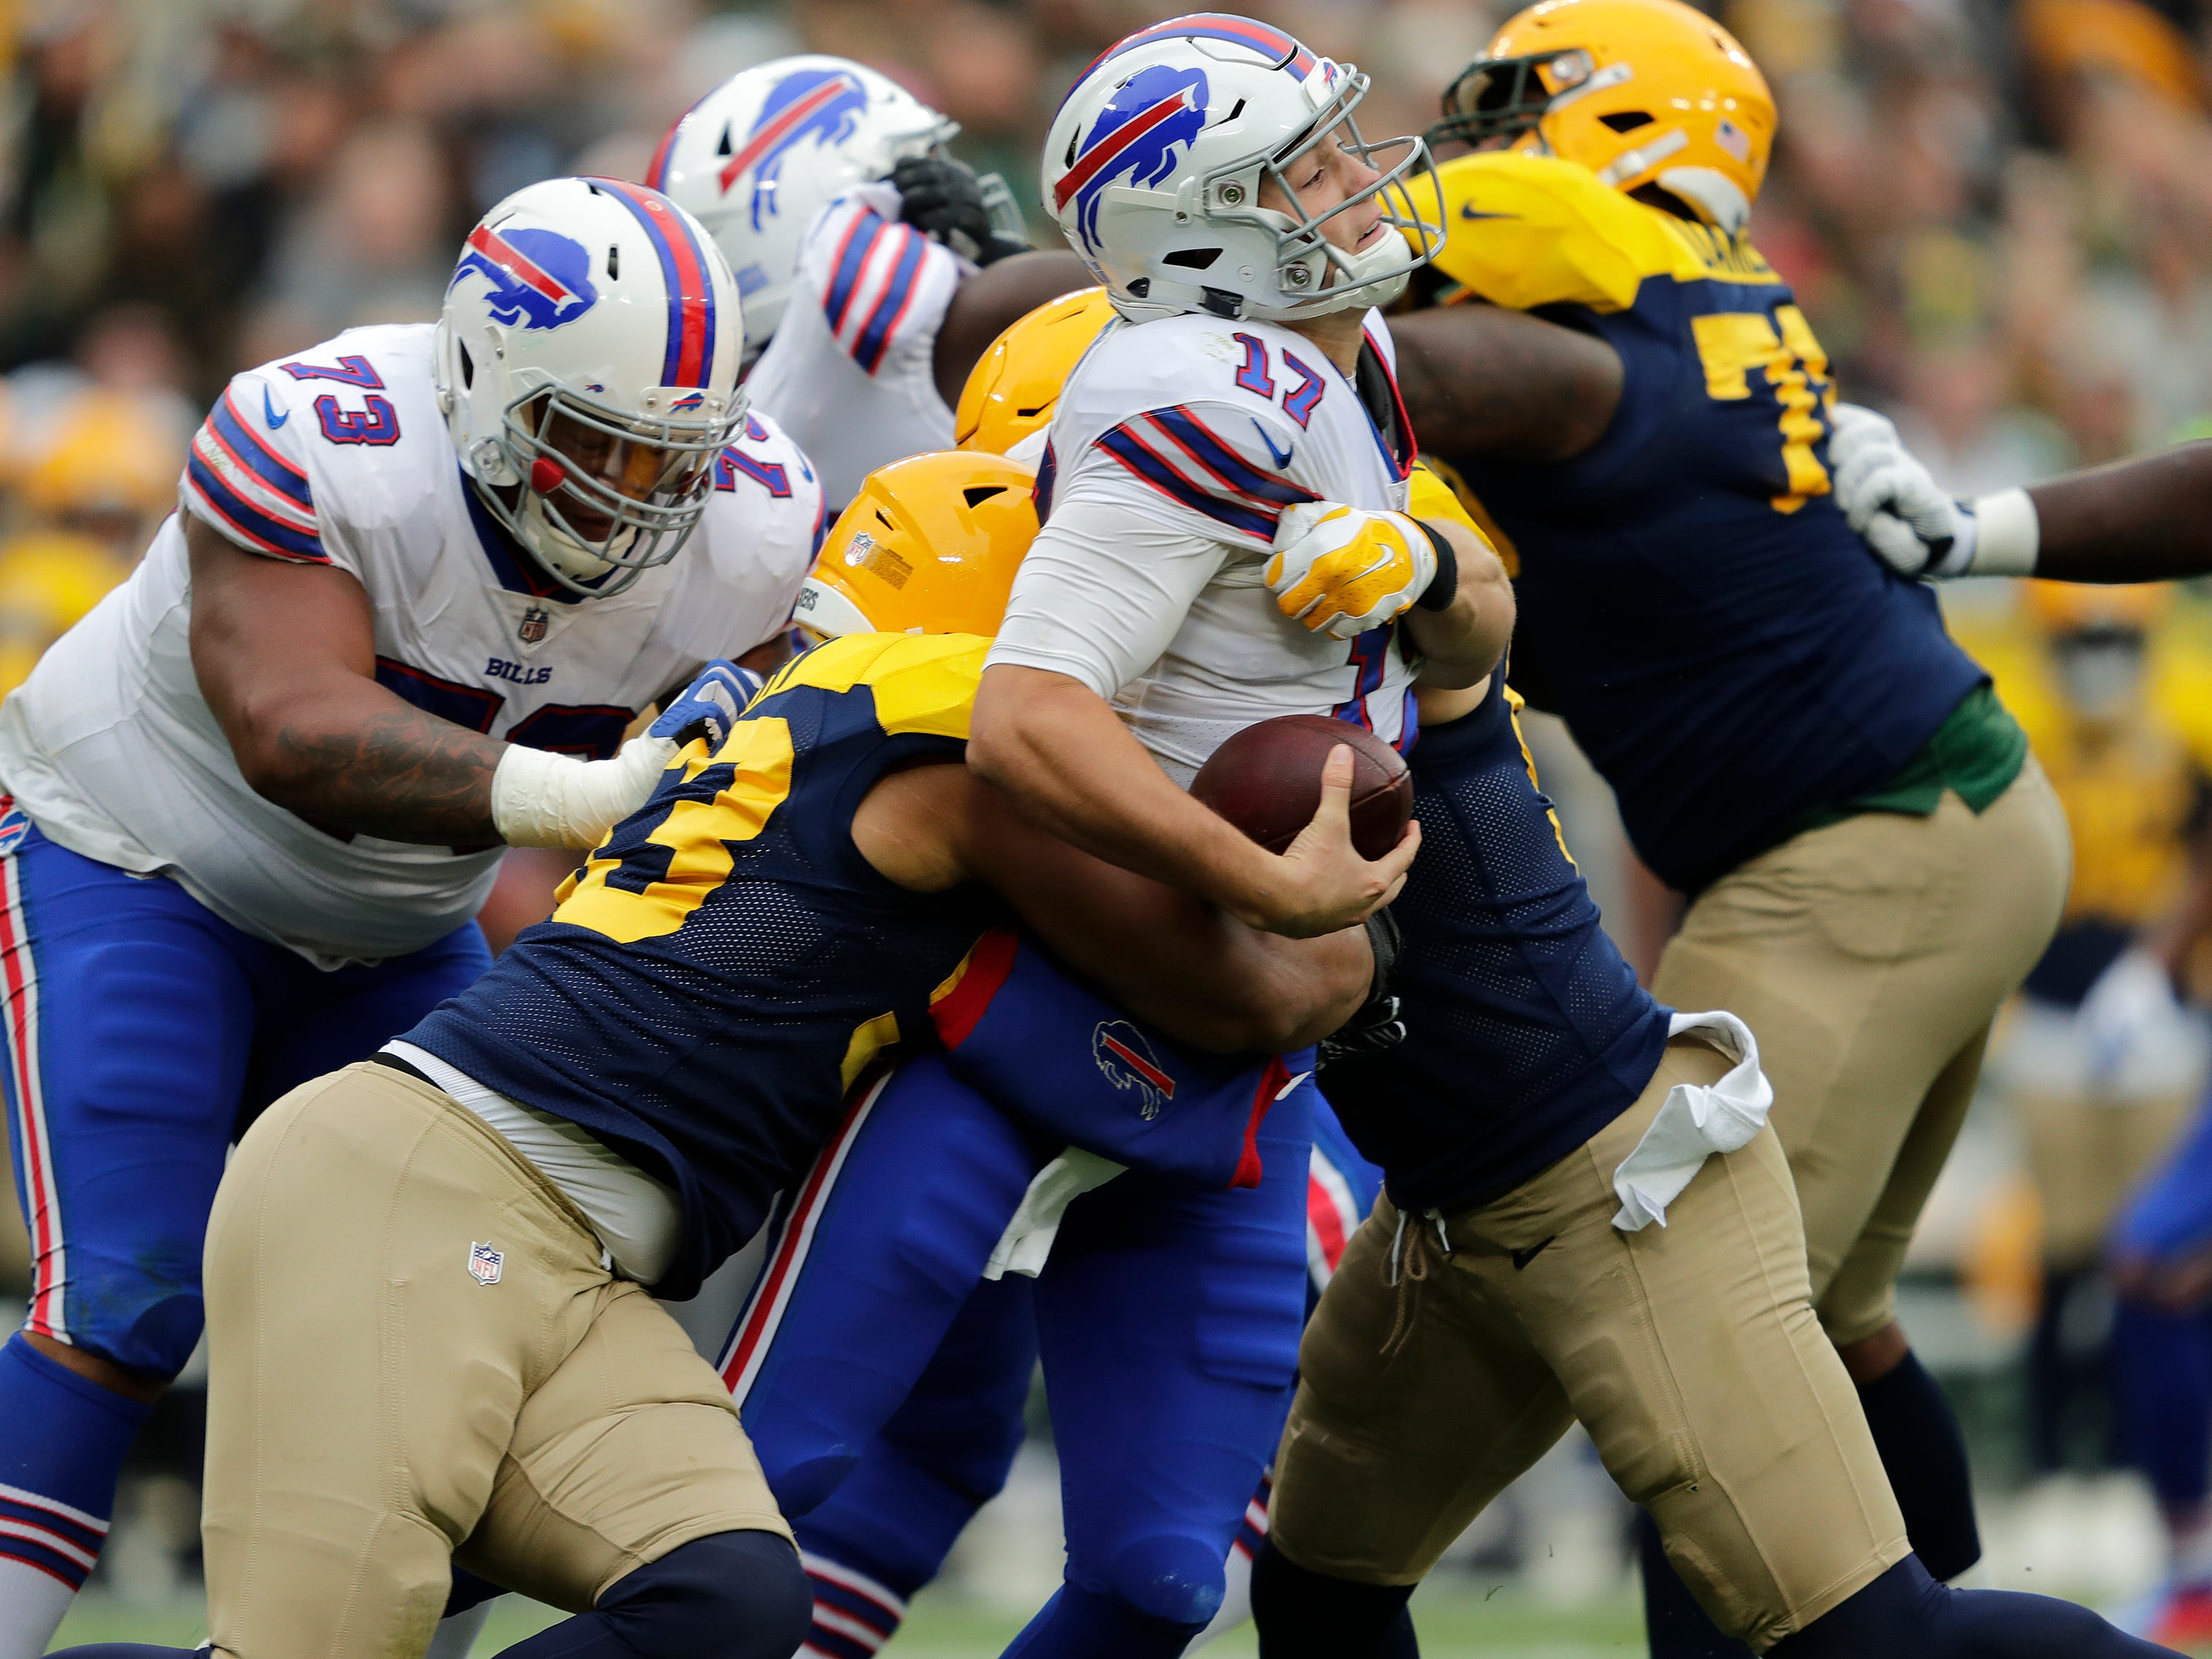 Green Bay Packers linebacker Nick Perry (53), left, and linebacker Clay Matthews (52) sack Buffalo Bills quarterback Josh Allen (17) in the second quarter during their football game Sunday, Sept. 30, 2018, at Lambeau Field in Green Bay, Wis. 